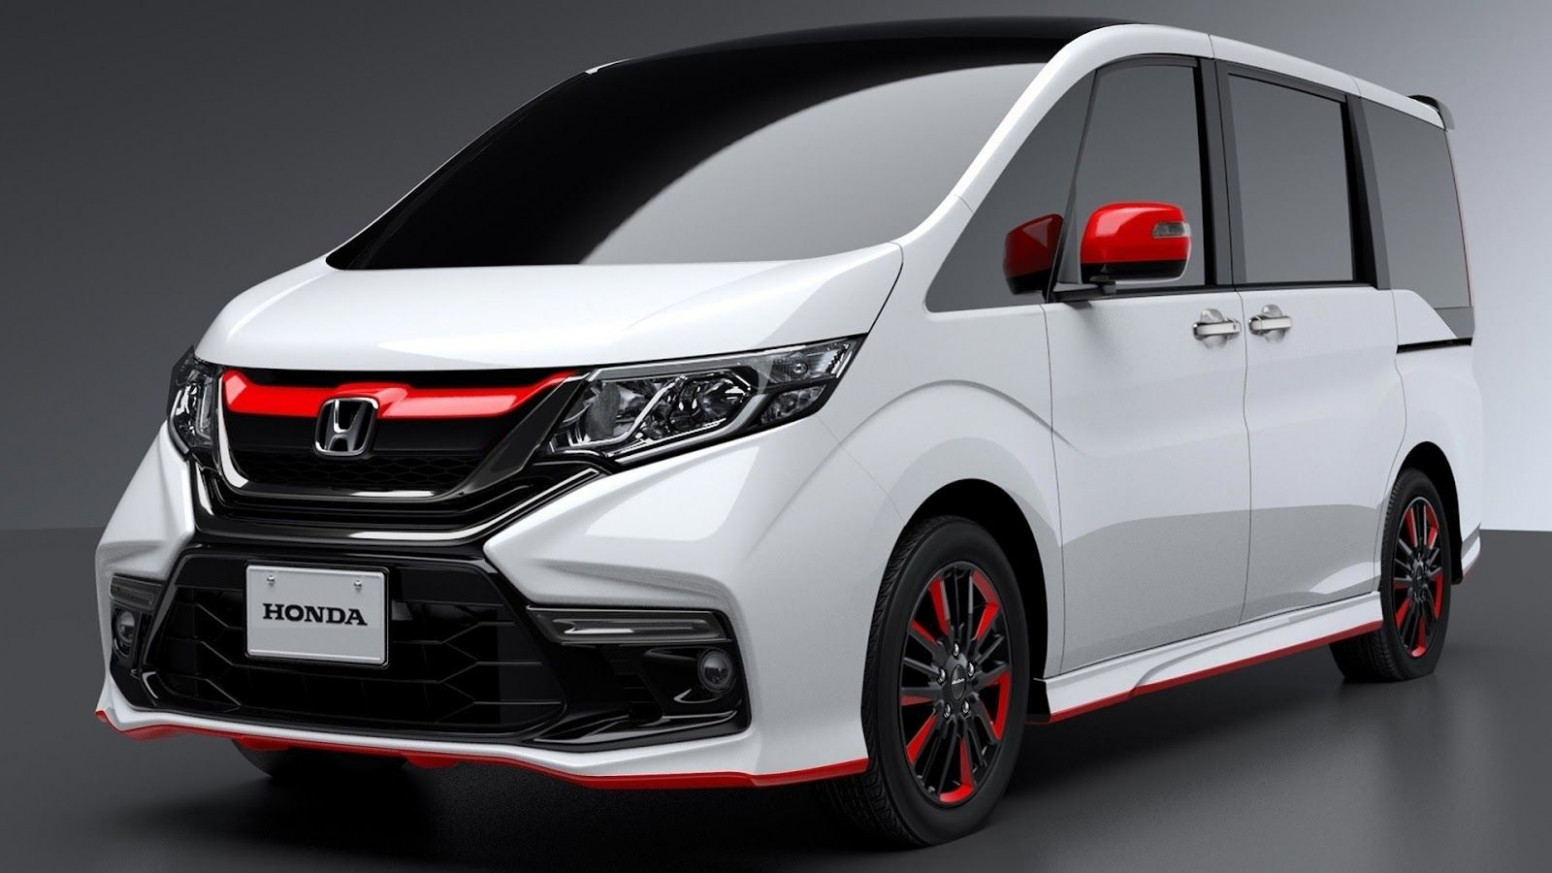 when will the Honda Freed 7 come out | New cars, Honda, Top cars